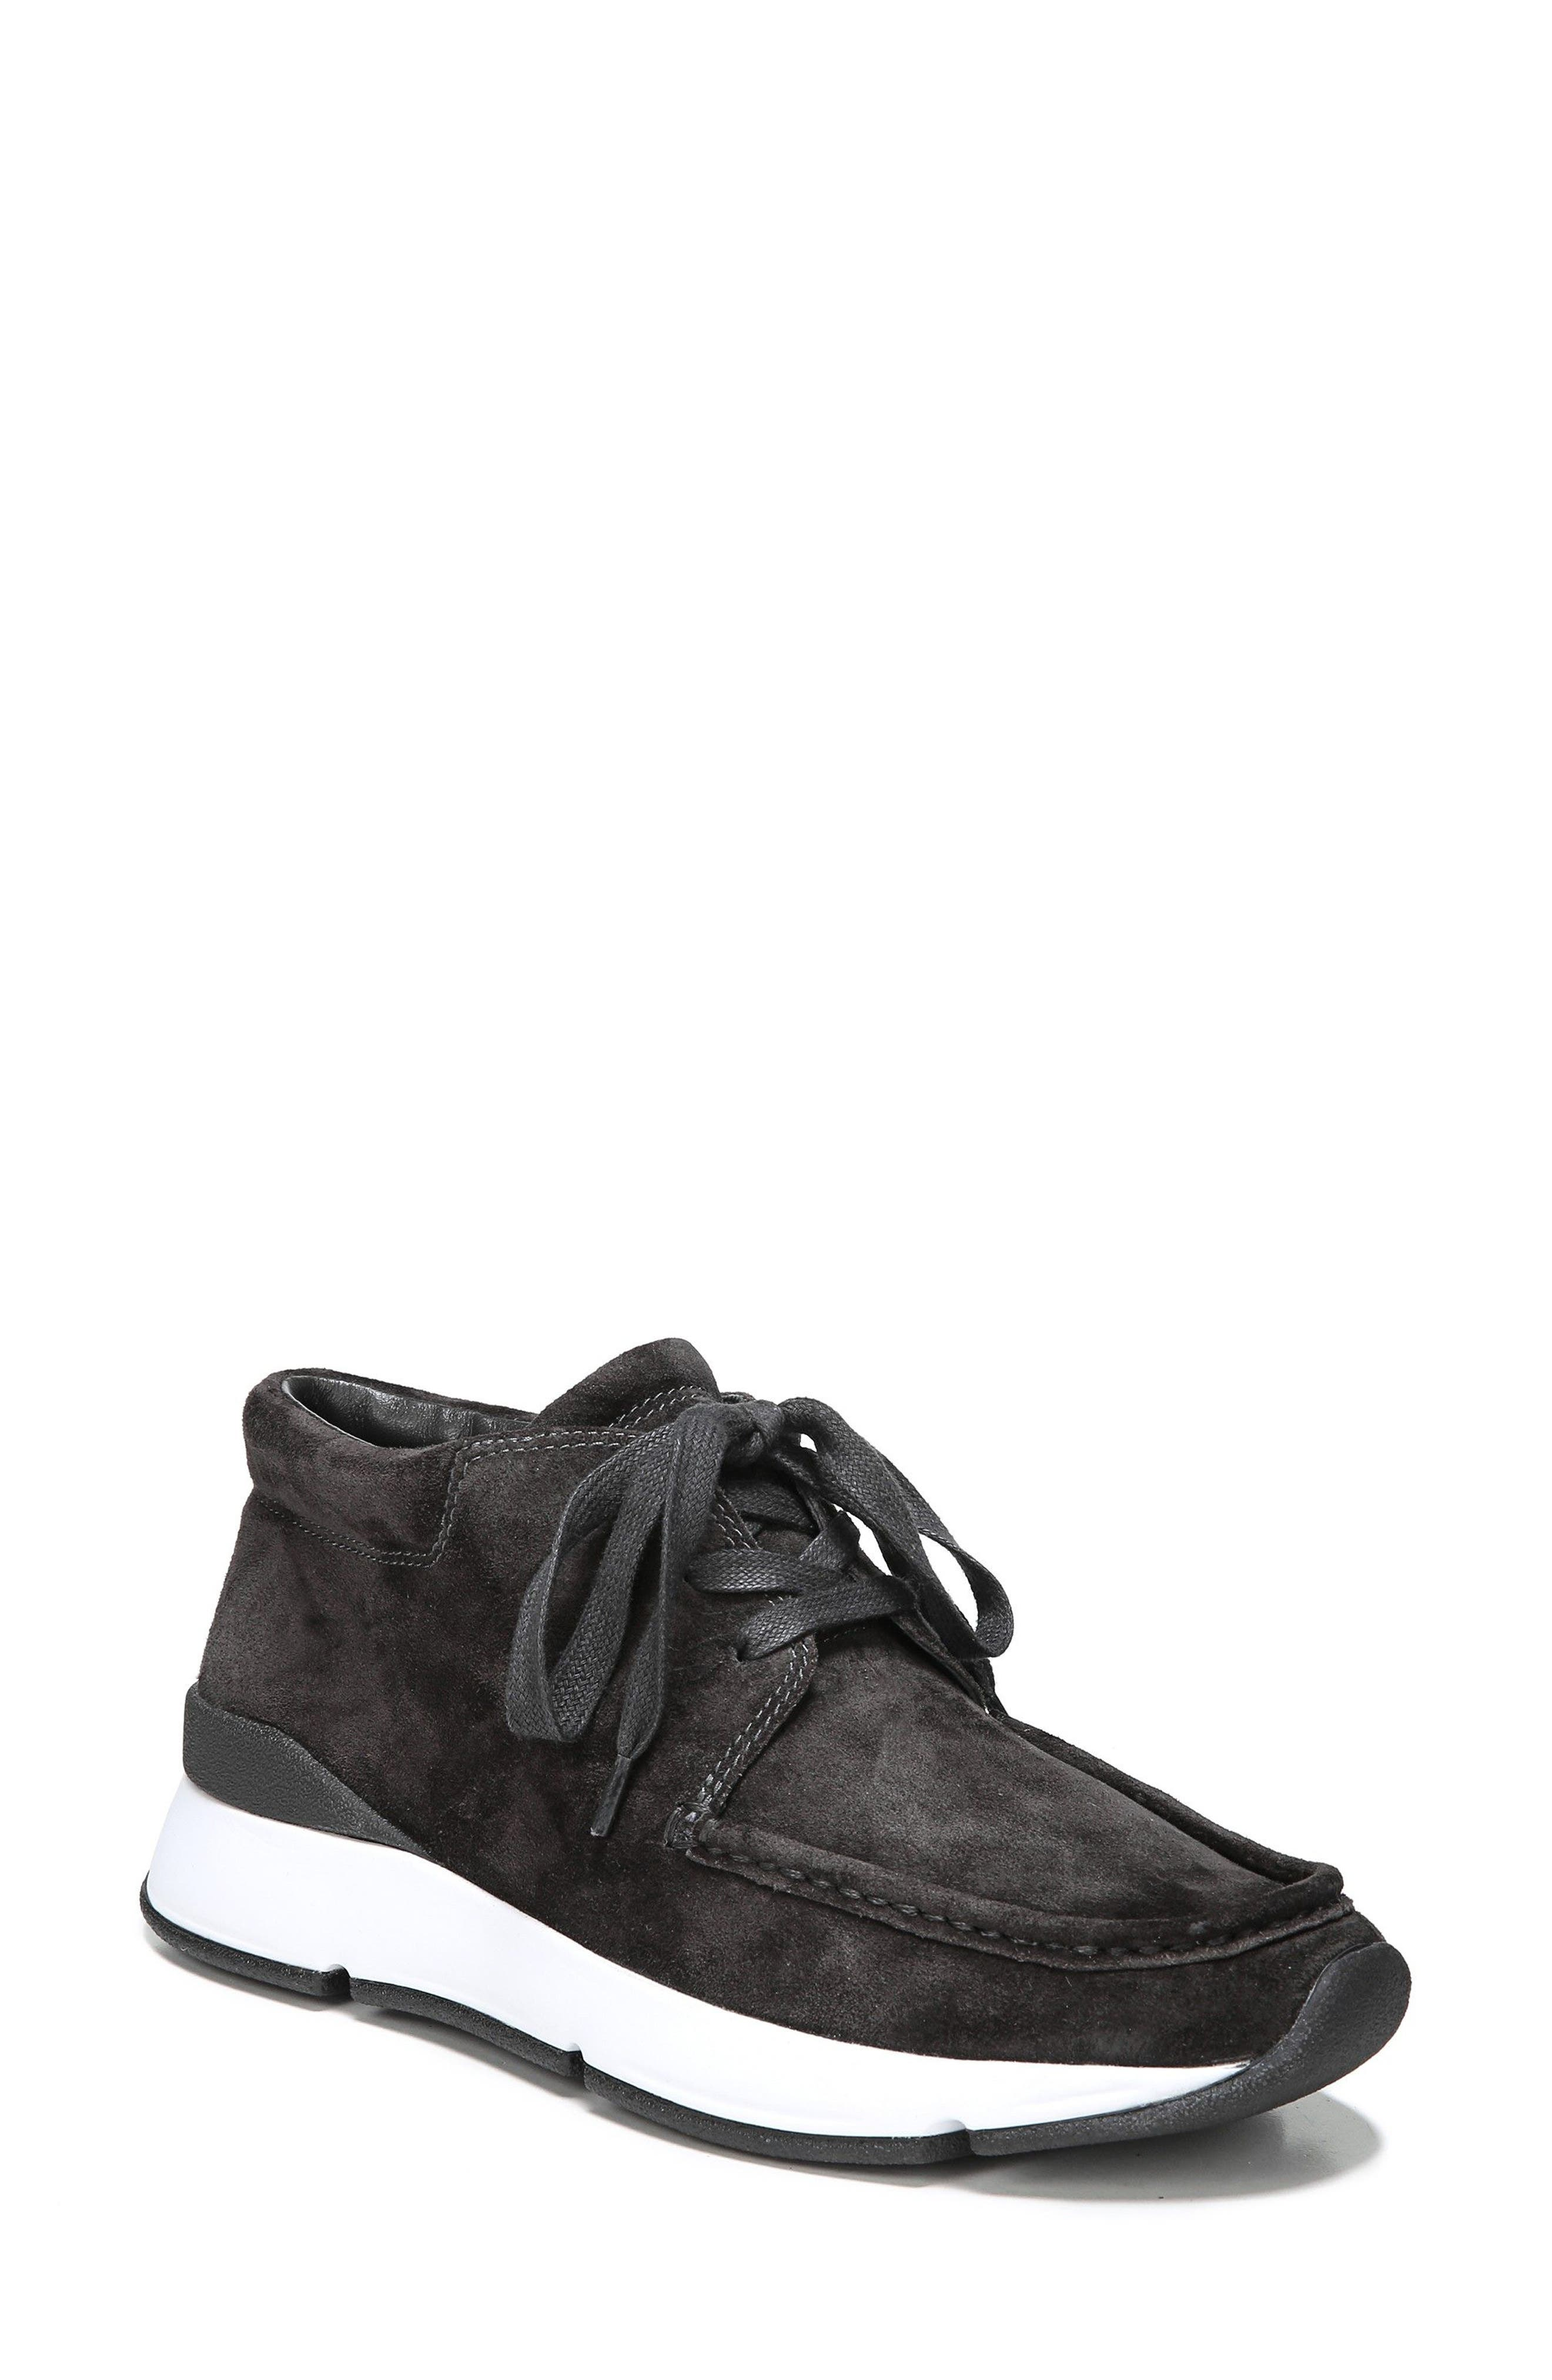 Alternate Image 1 Selected - Vince Toronto Chukka Sneaker (Women)